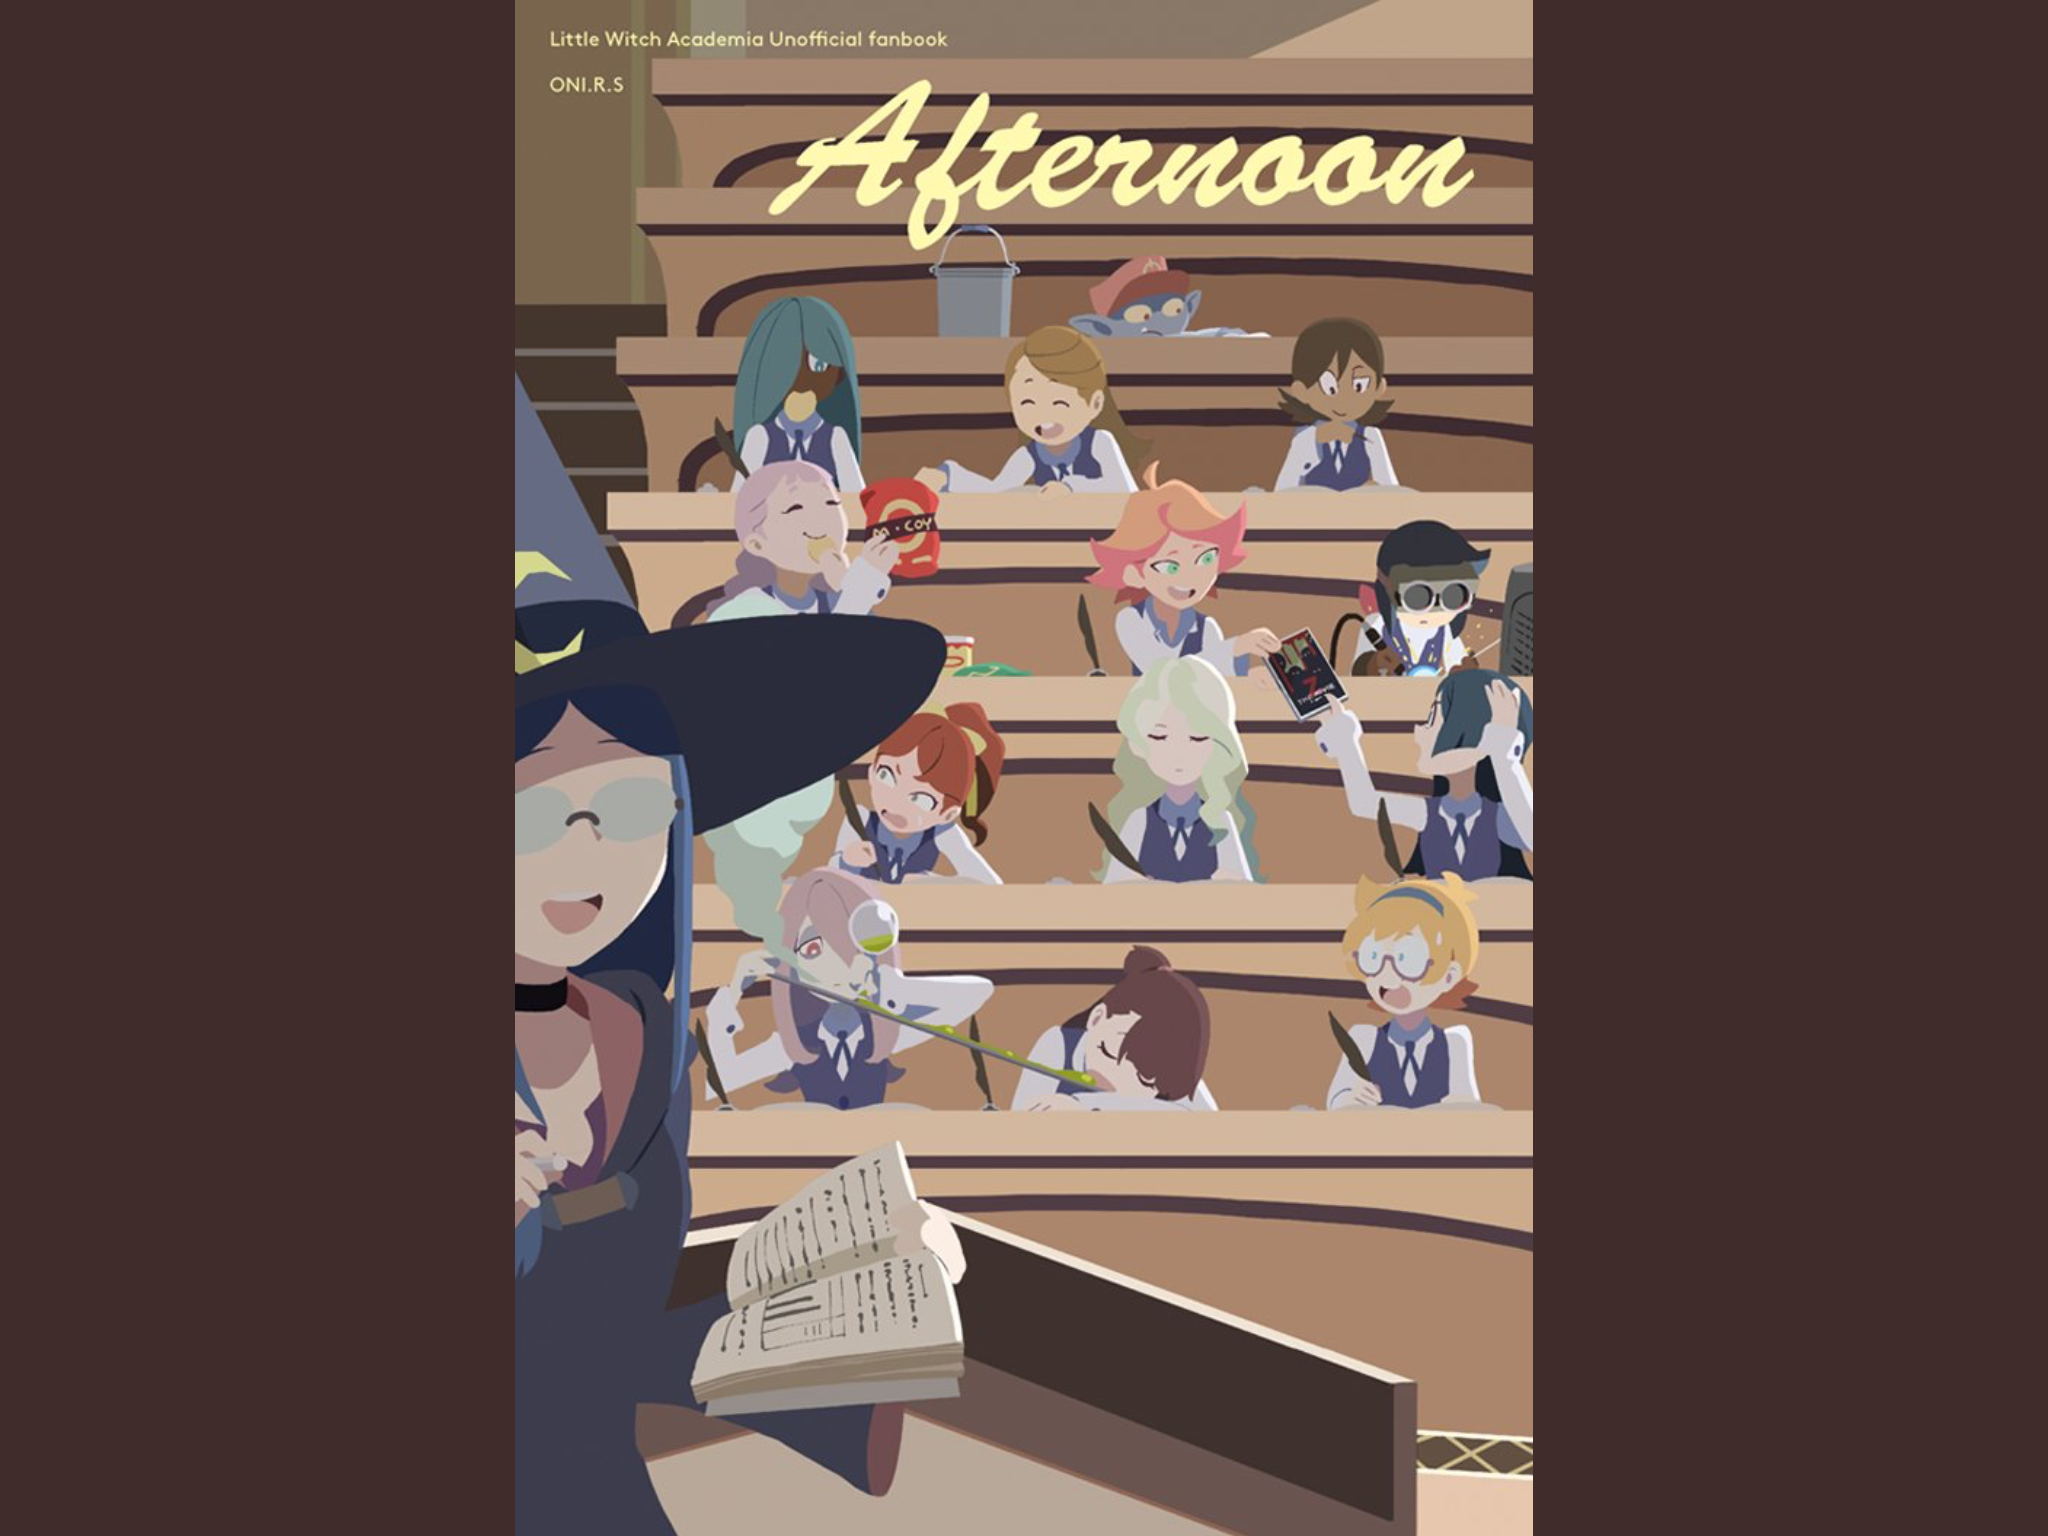 Pin by Sophia on Little Witch Academia Witch